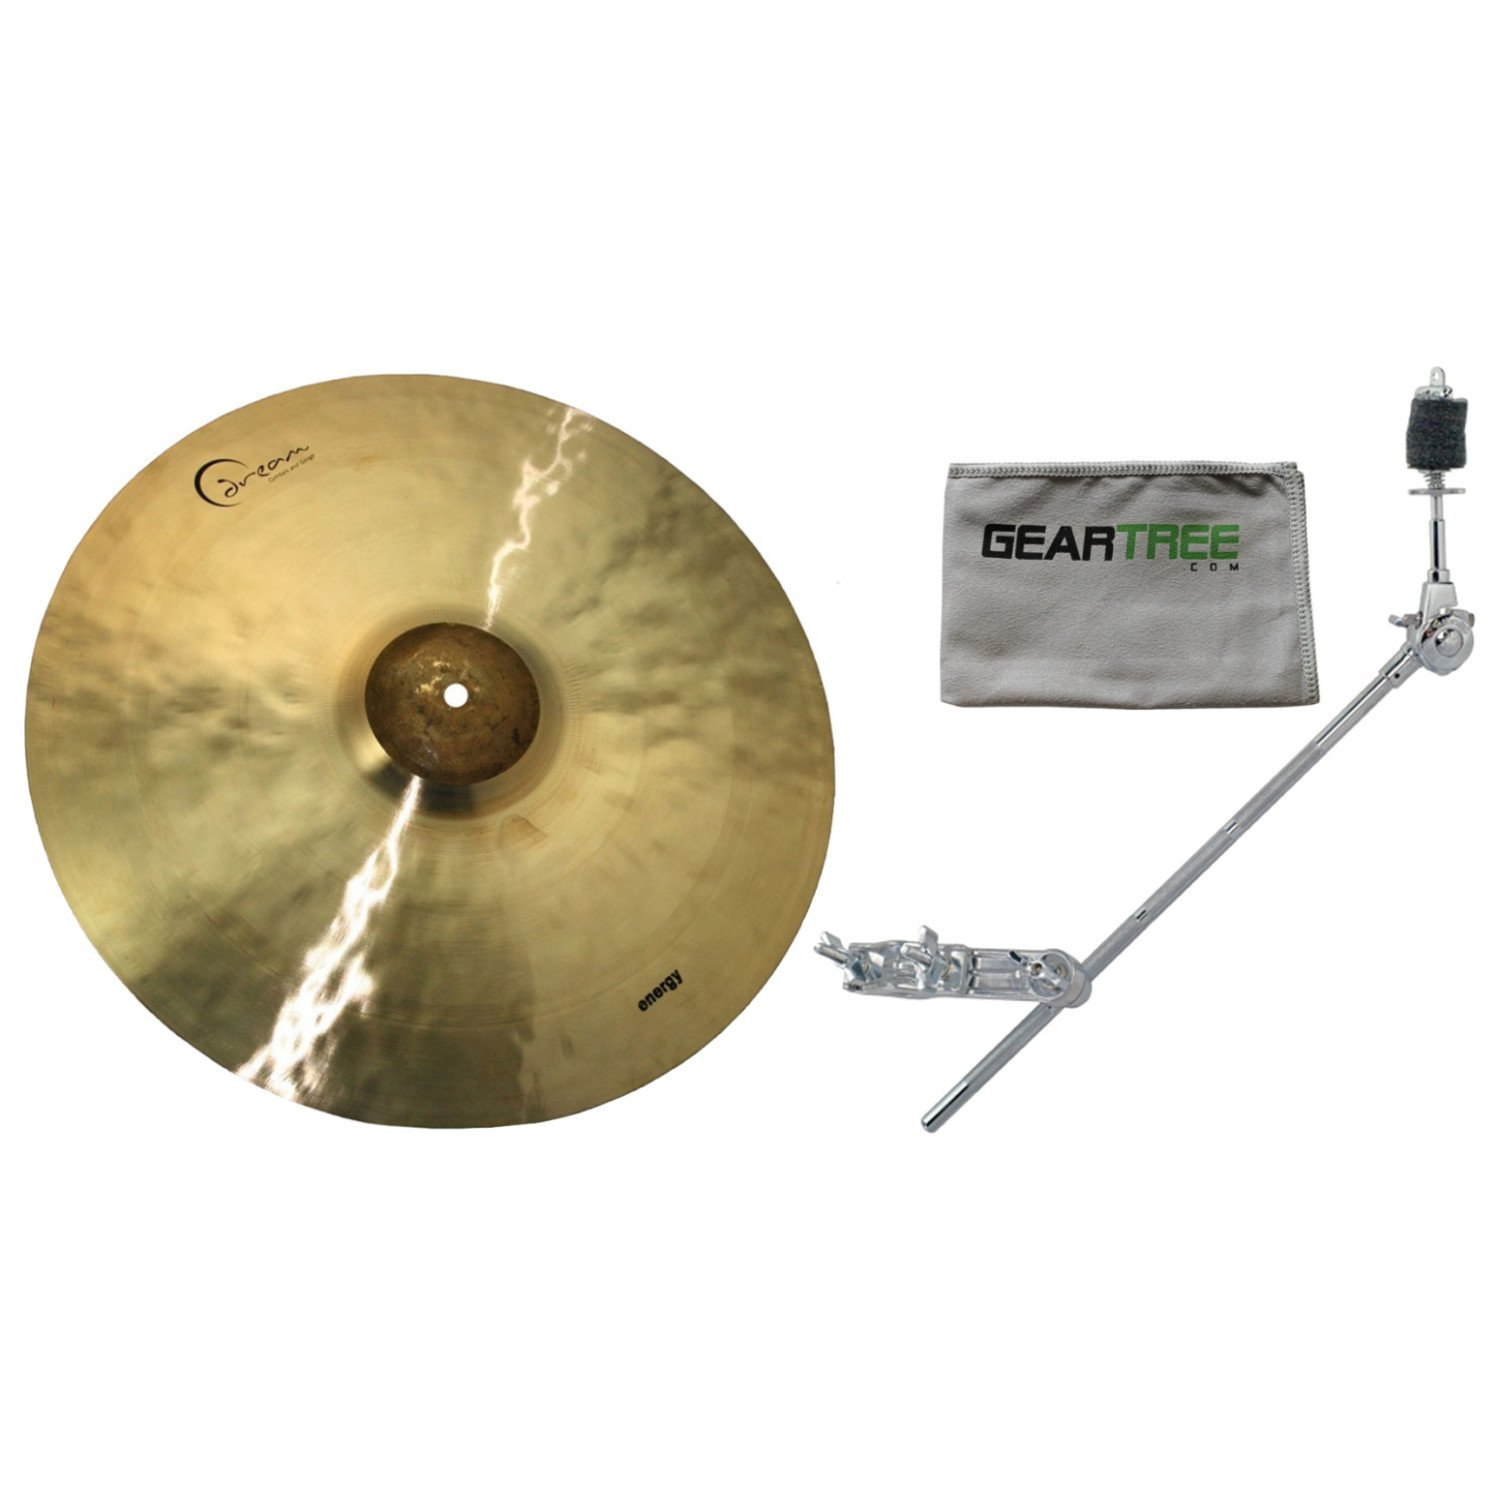 Dream ECRRI21 21 Inch Energy Crash Ride w/Geartree Cloth and Cymbal Arm by Dream Cymbals and Gongs